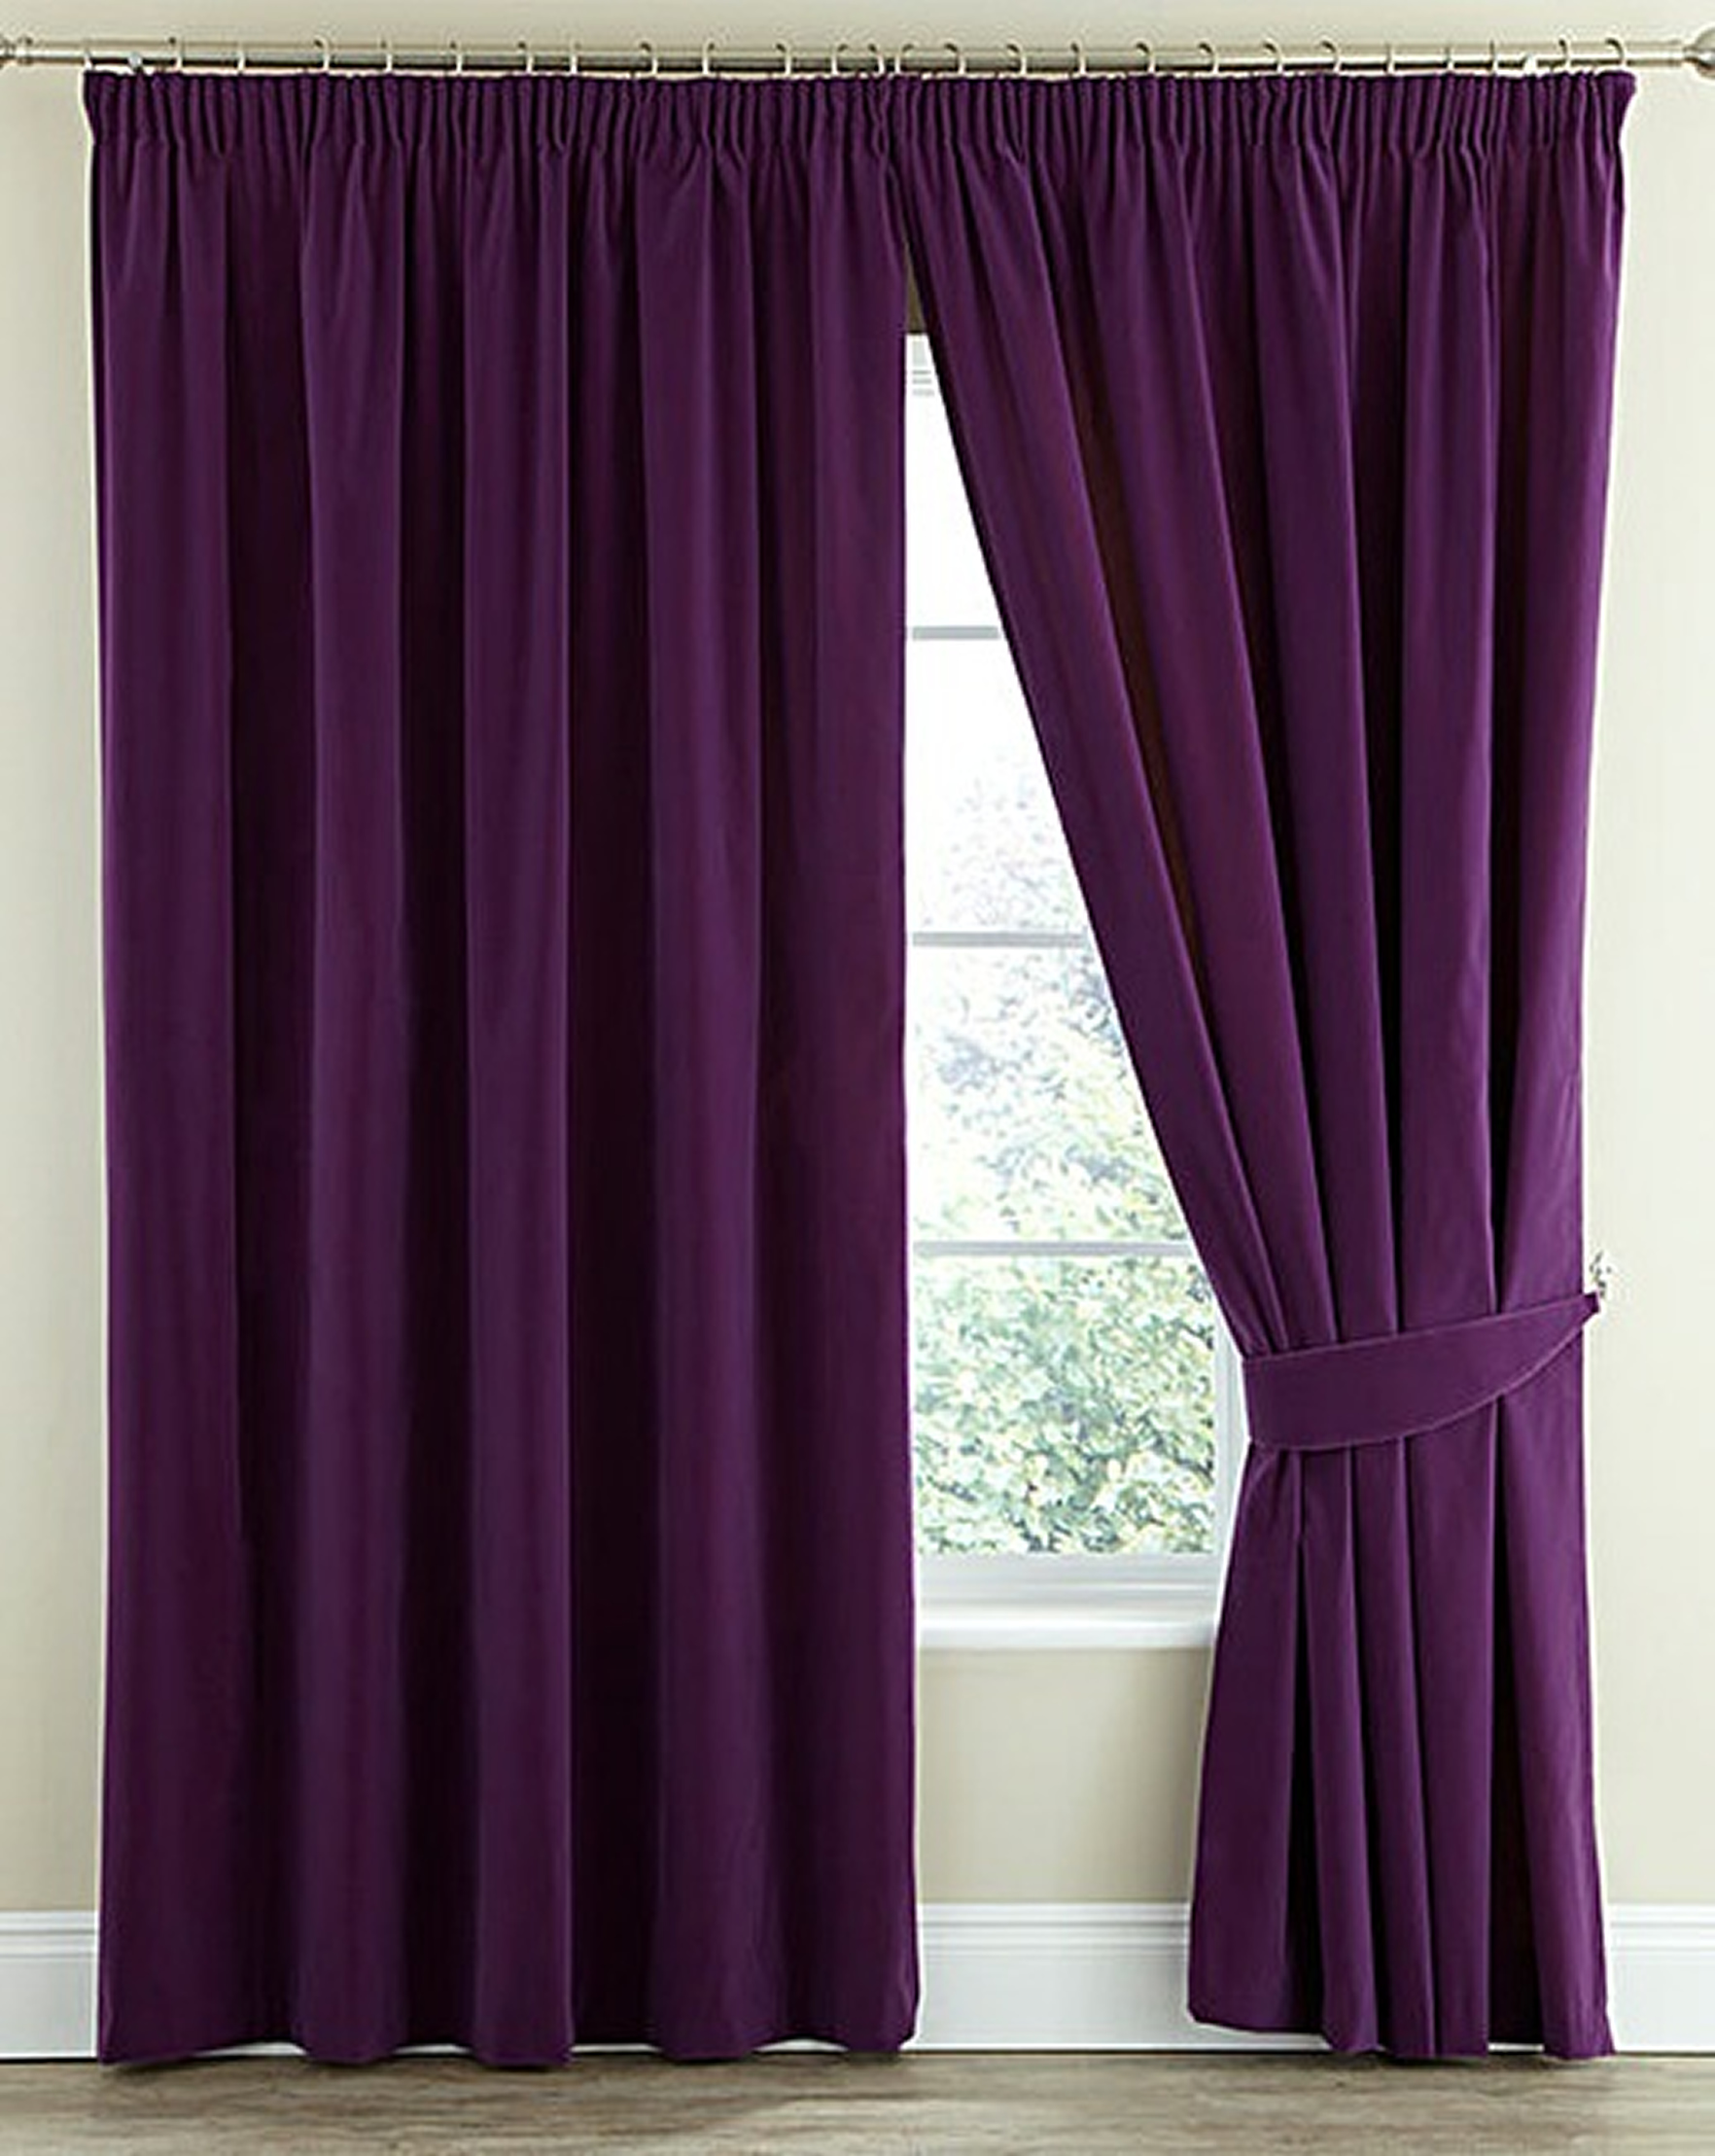 Thermal Velour Velvet Pencil Pleat Curtains Finished In Bottle Green